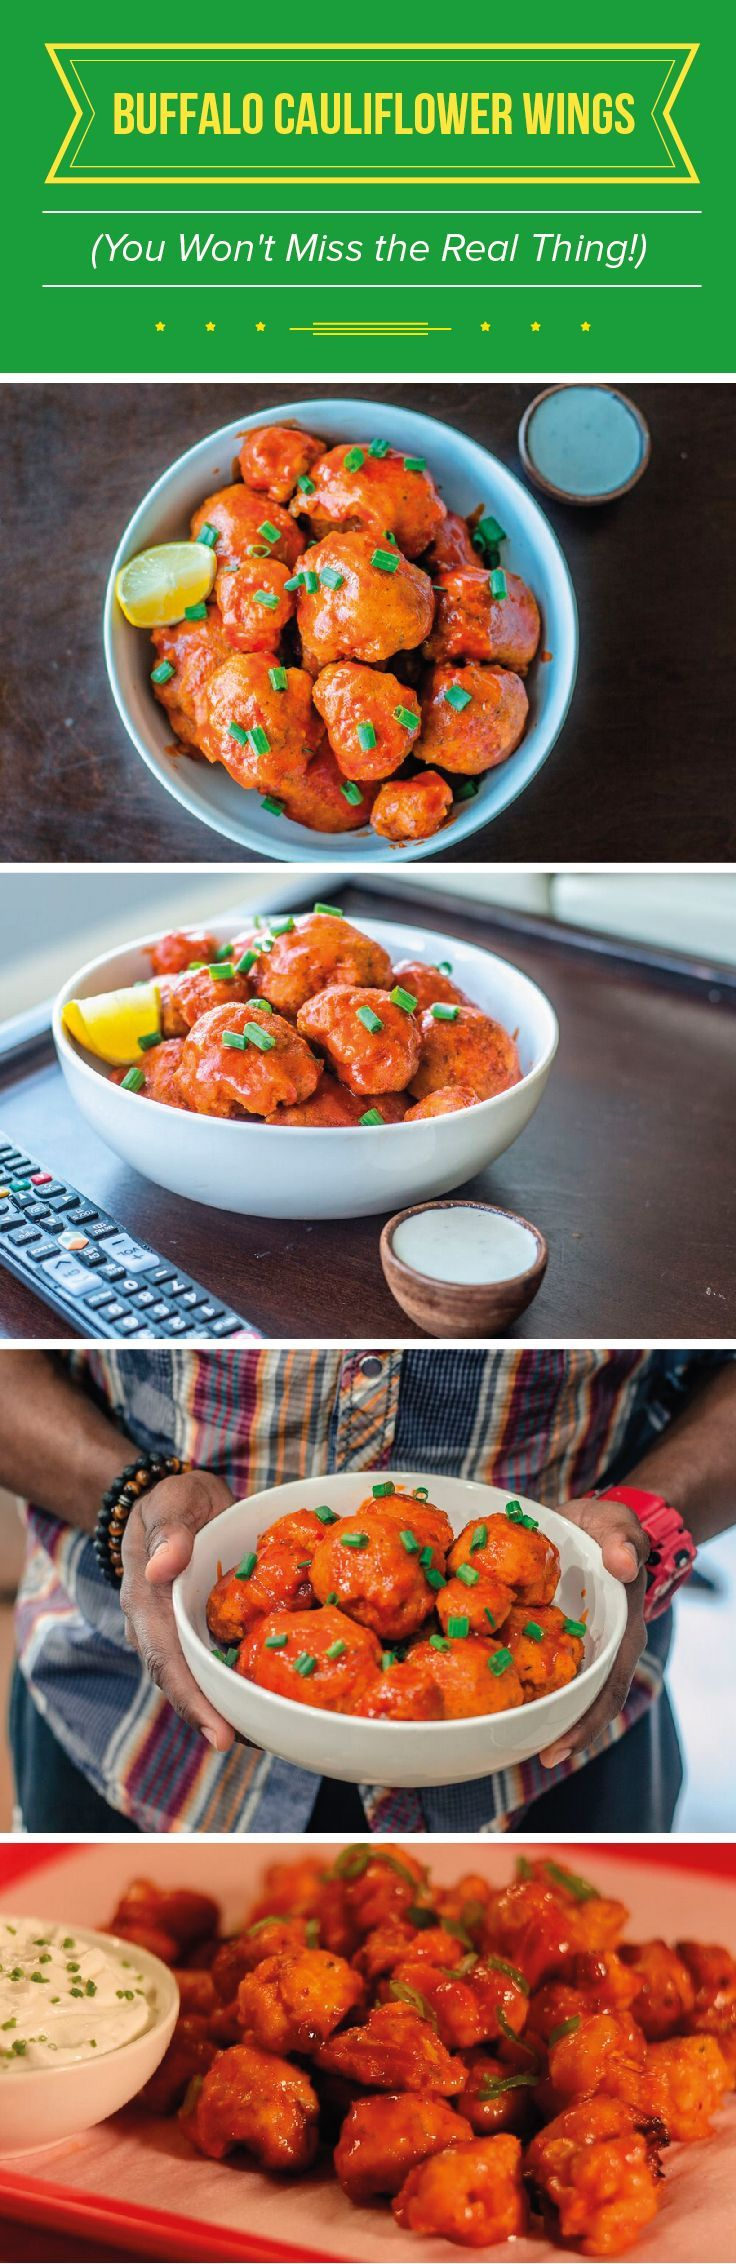 """See more here ► https://www.youtube.com/watch?v=0KRTOVZ92_4 Tags: good weight loss pills, weight lose, lose weight now - Want to surprise your friends with a healthier version of a game time favorite? Try these buffalo """"wings"""" made using cauliflower! #fitmencook #fitwomencook #snack #healthy #exercise #diet #workout #fitness #health"""